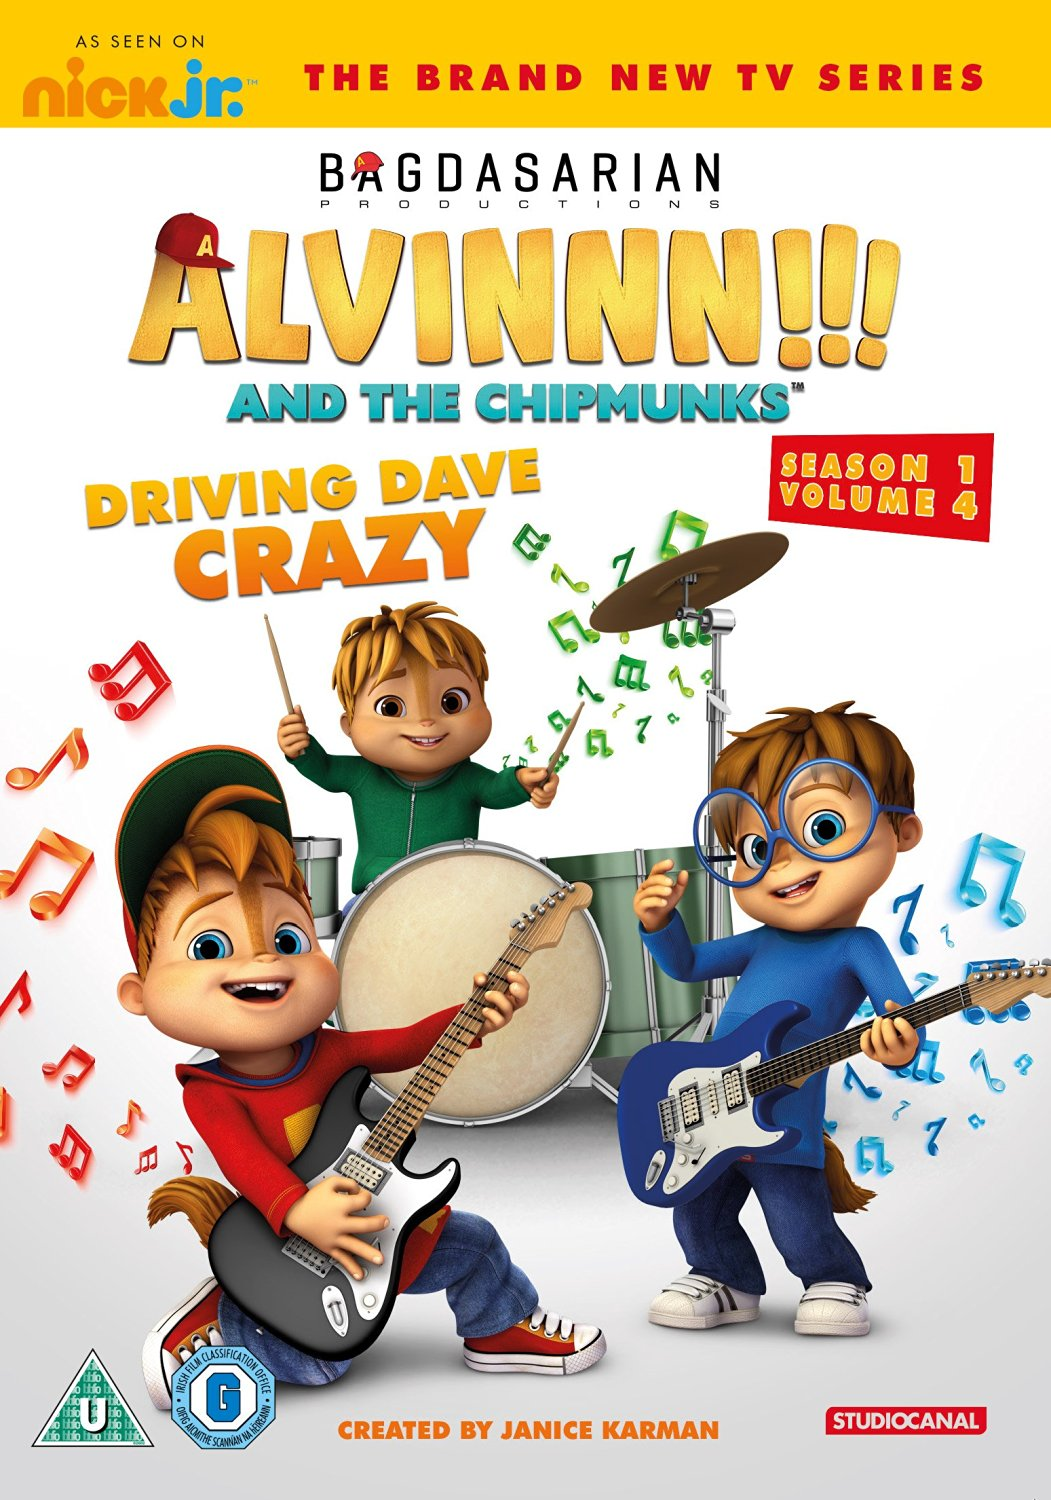 Driving Dave Crazy Region 2 Dvd Alvin And The